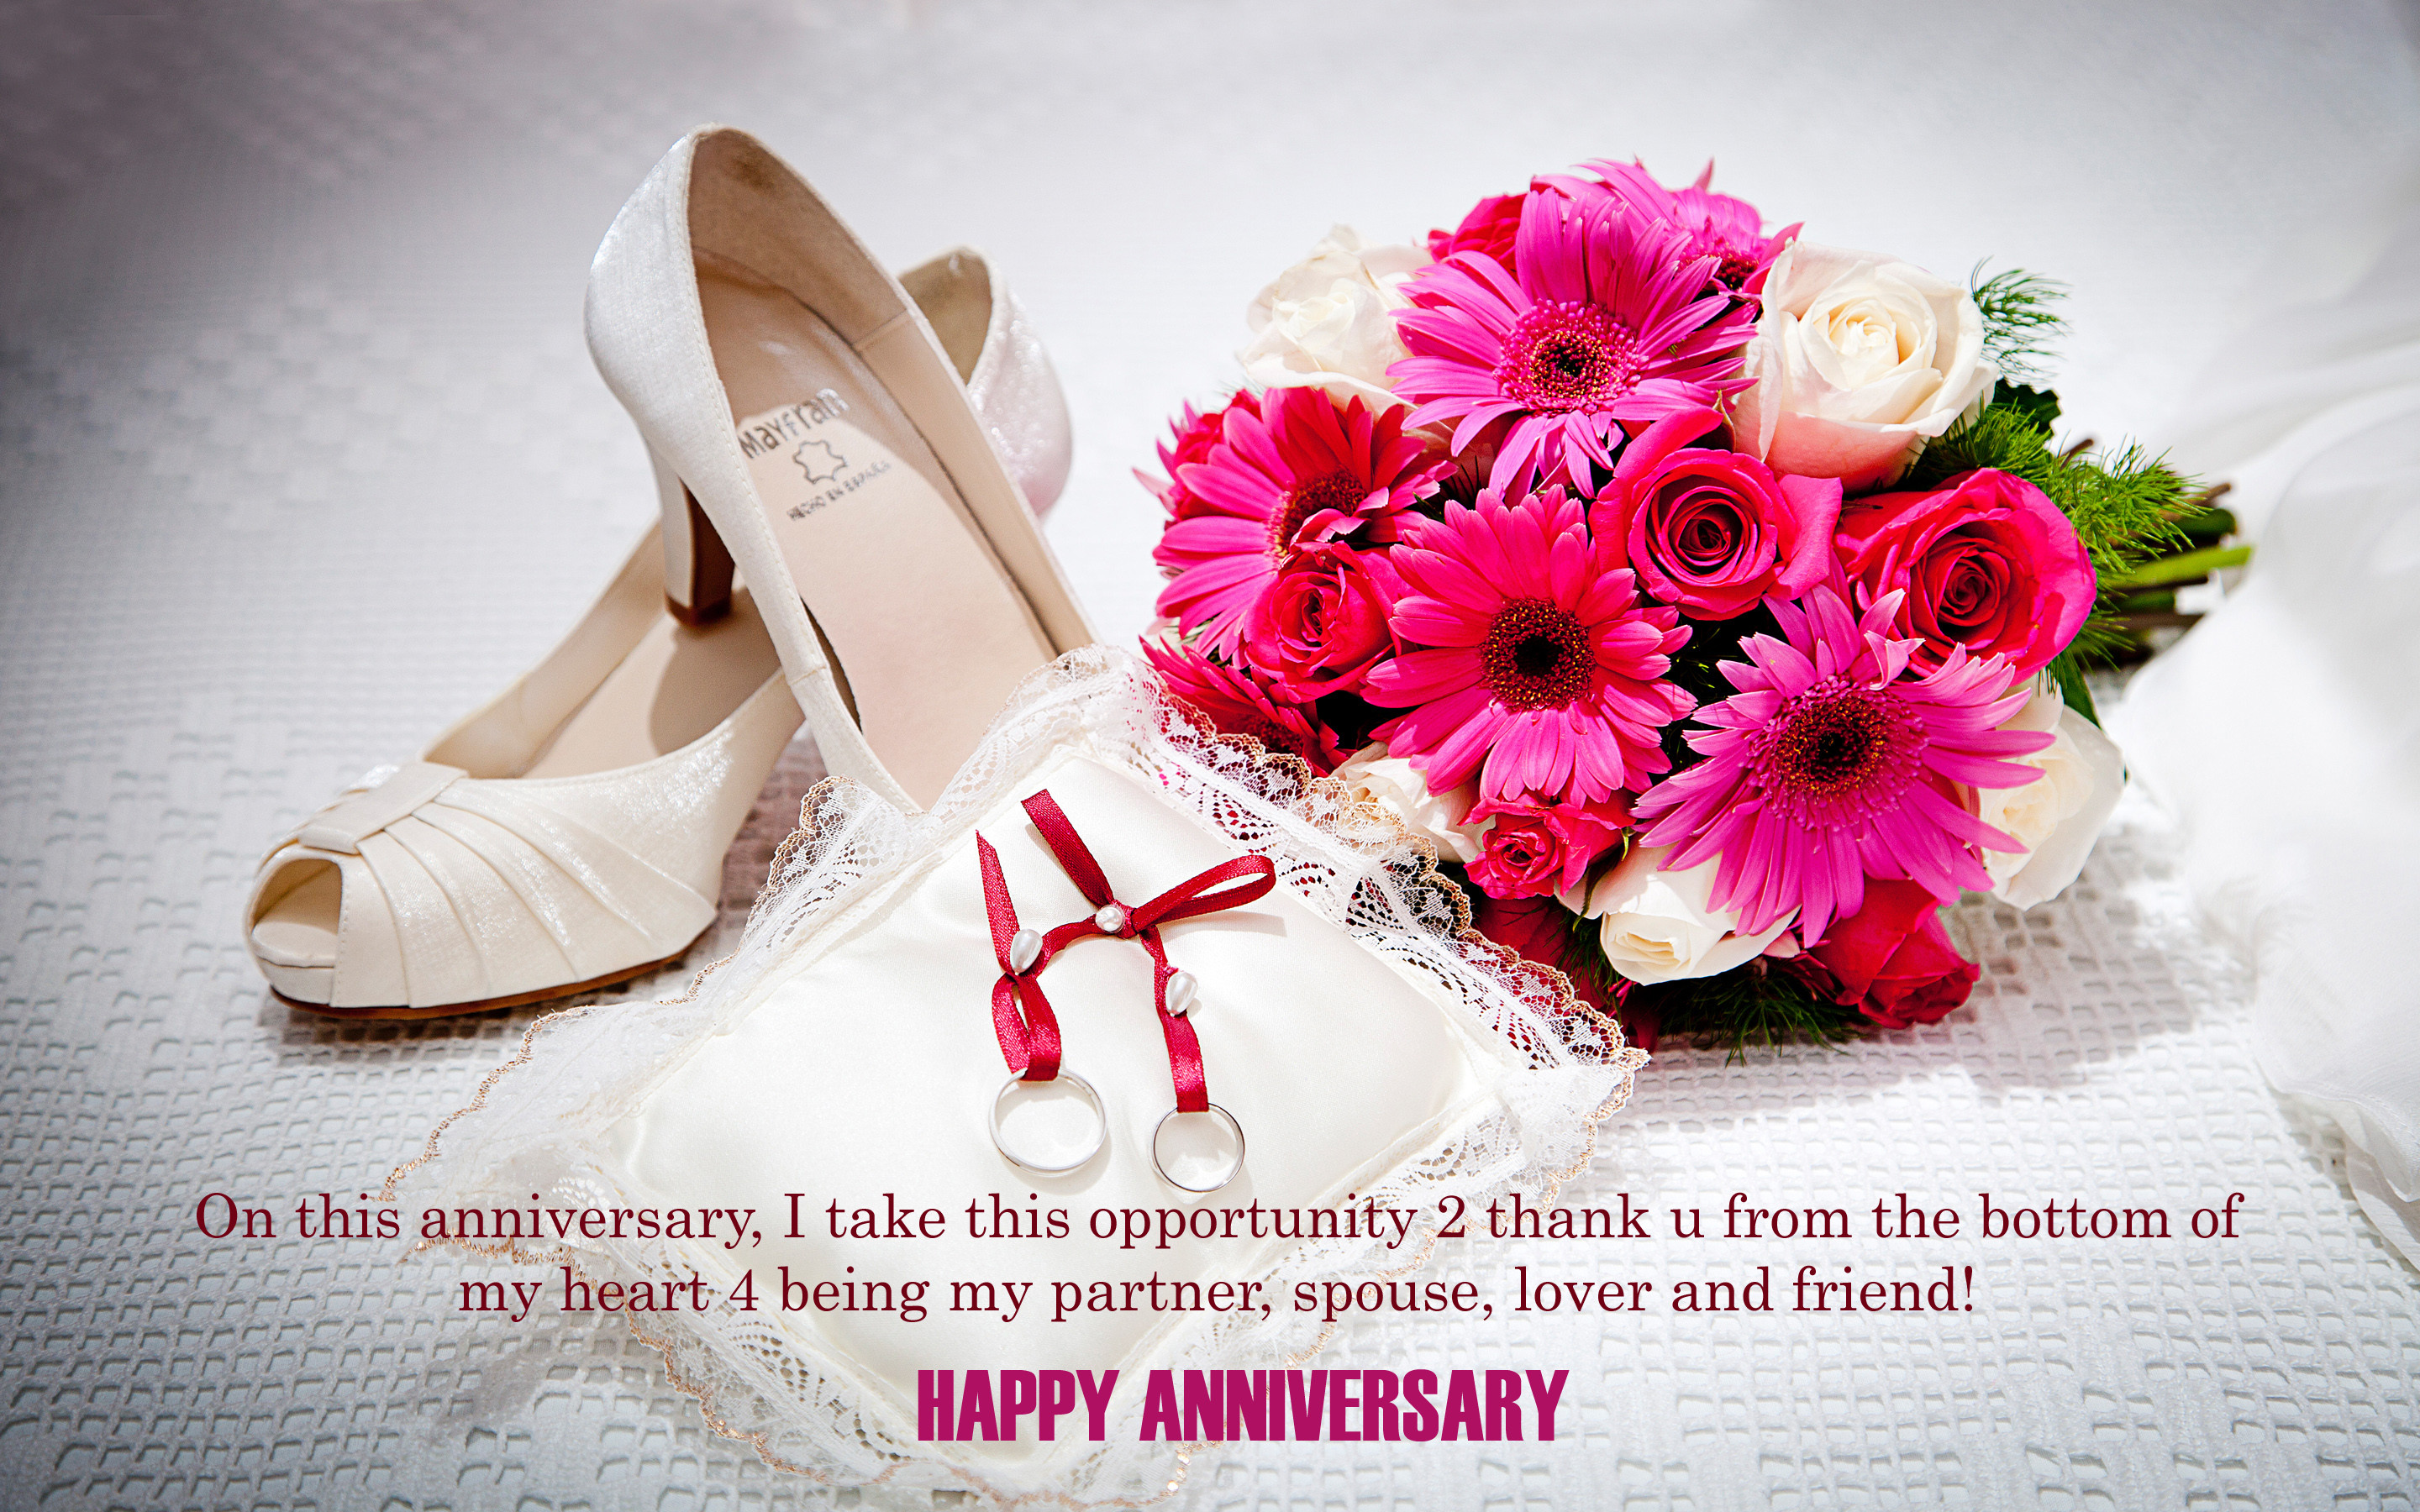 Happy anniversary wallpapers images